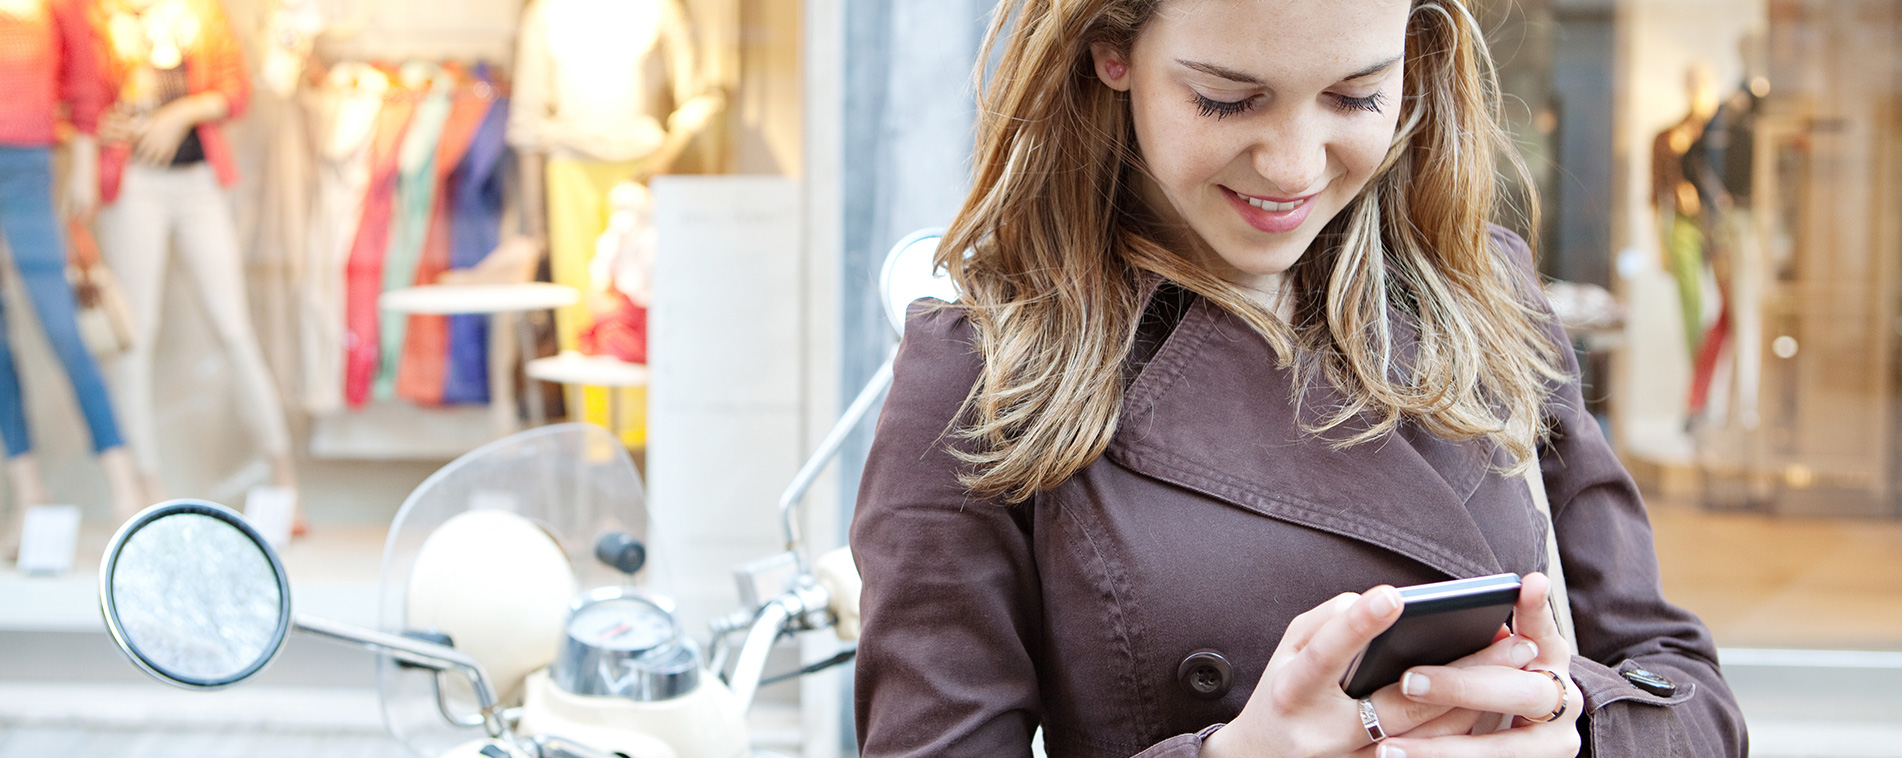 mobile advertising continues to grow